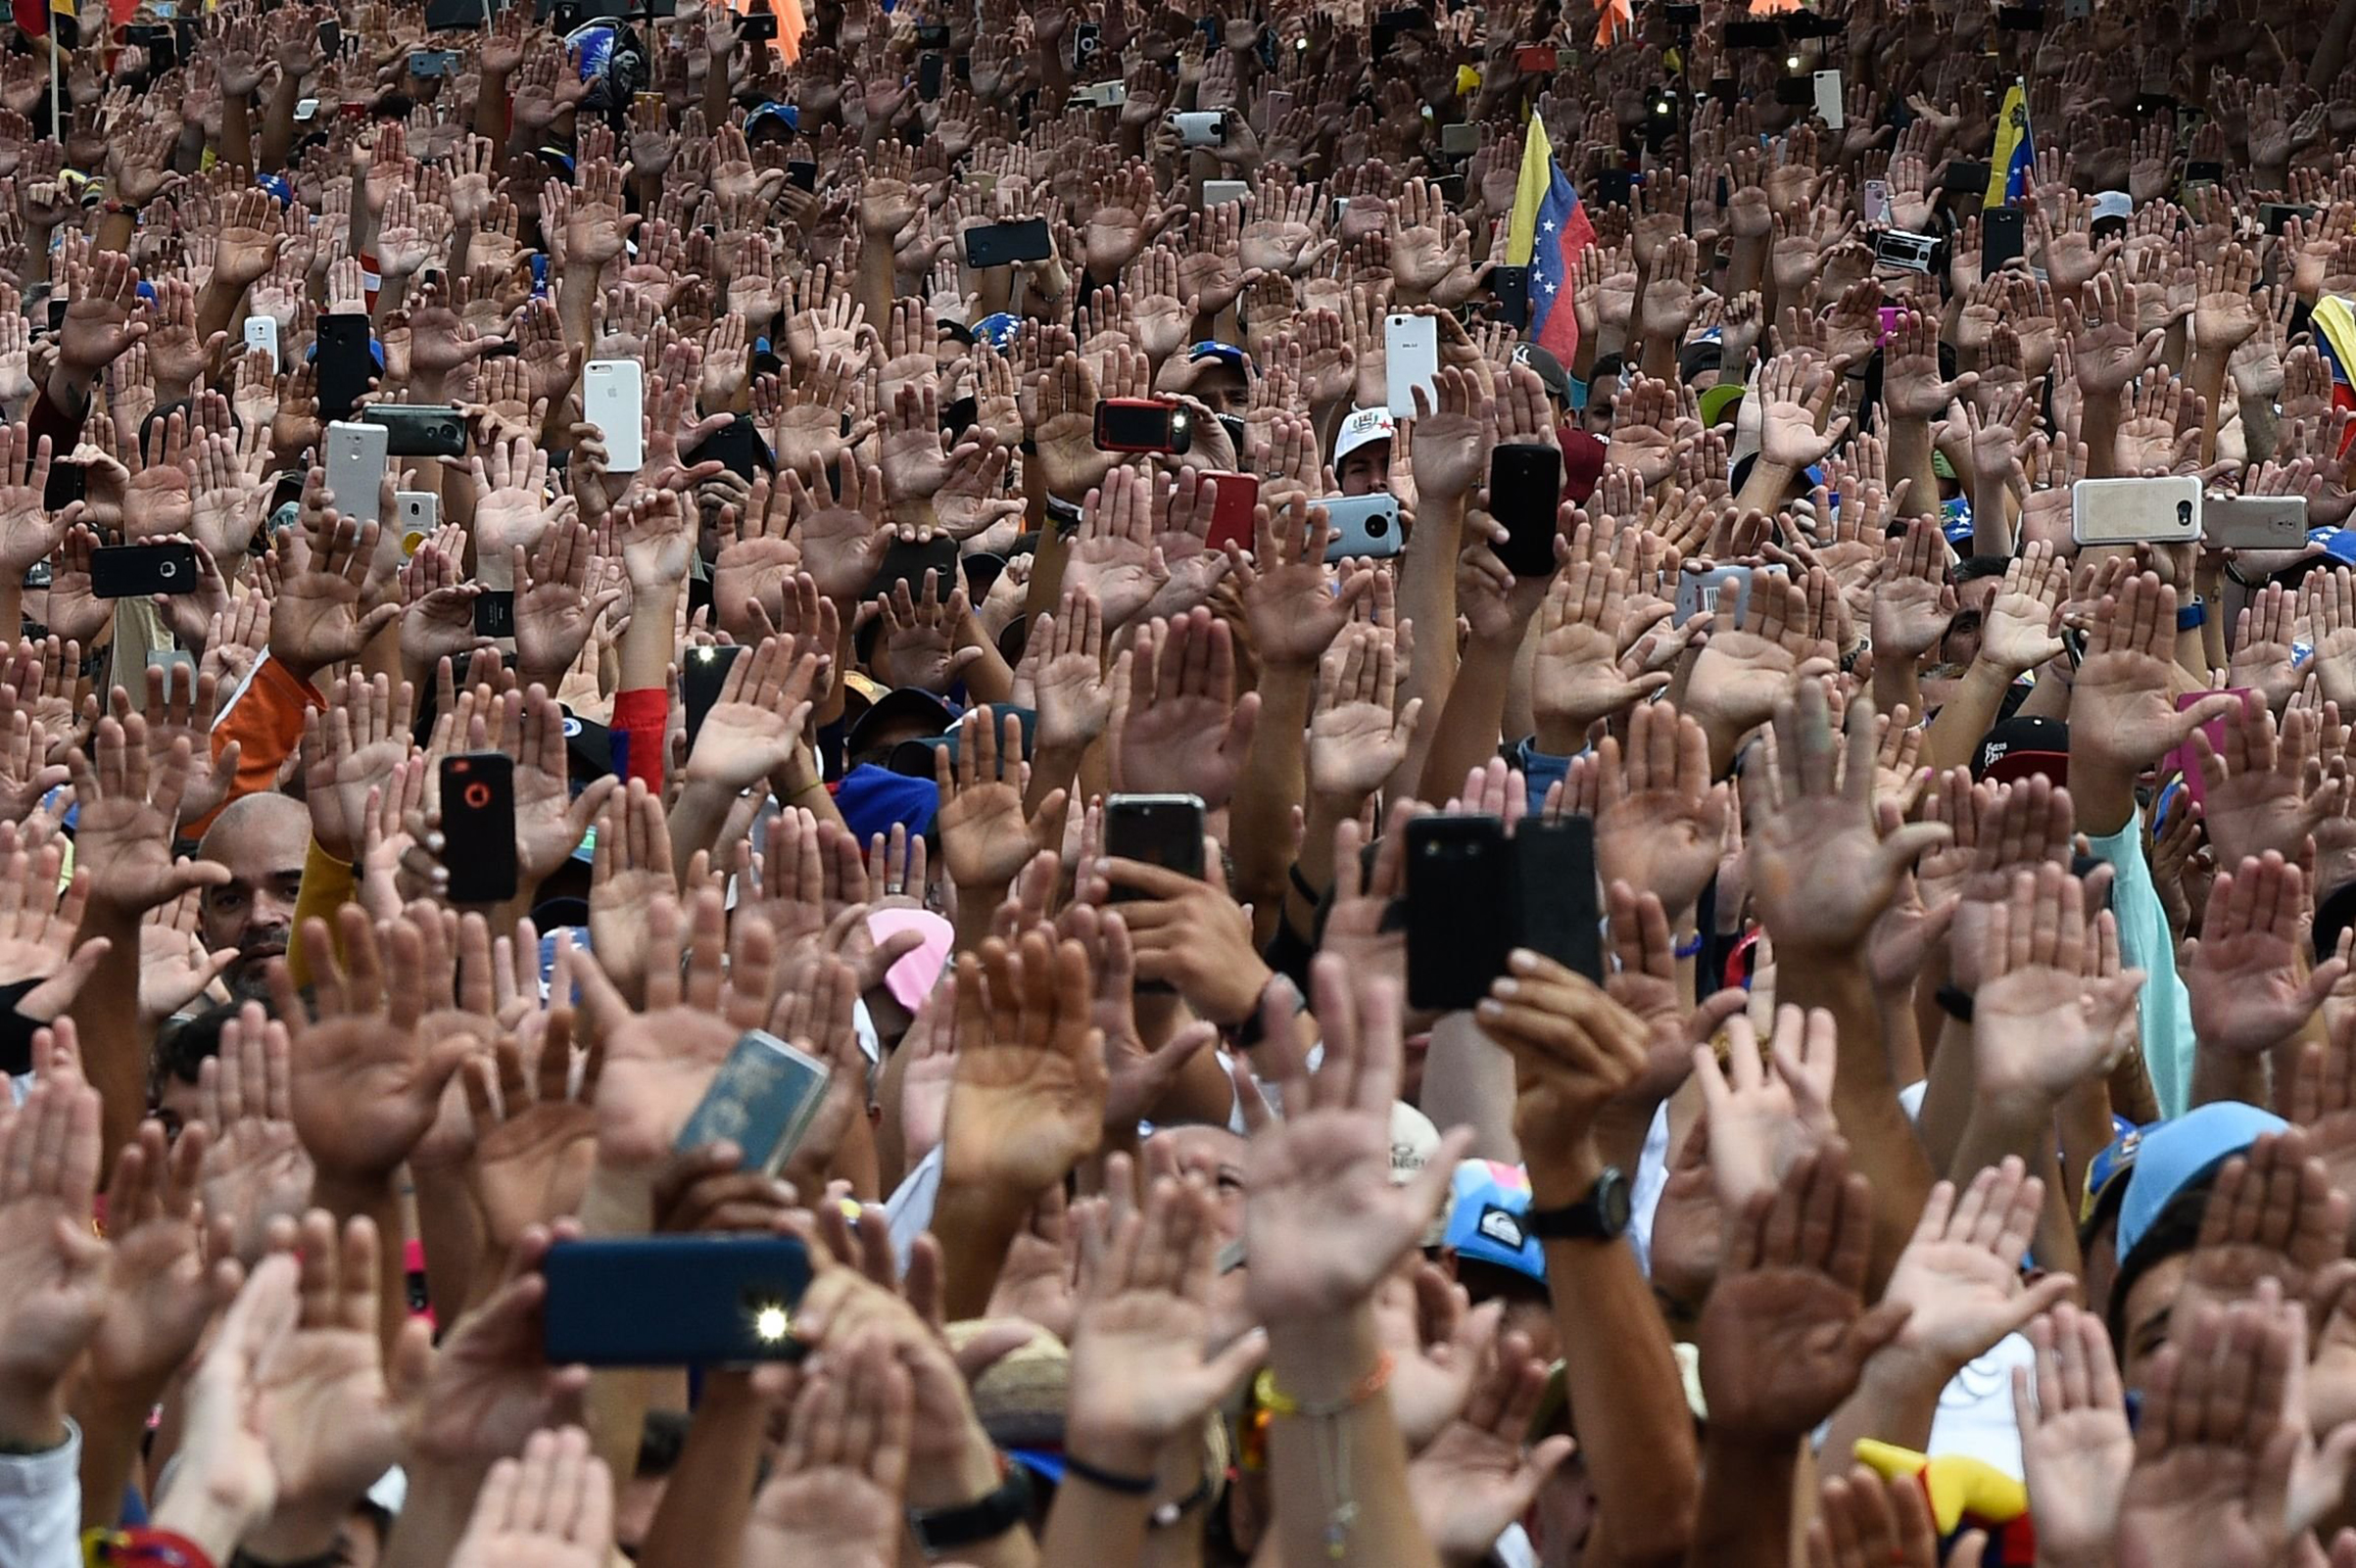 People raise their hands during a massive anti-government rally against Venezuelan President Nicolás Maduro in Caracas on Jan. 23, 2019.